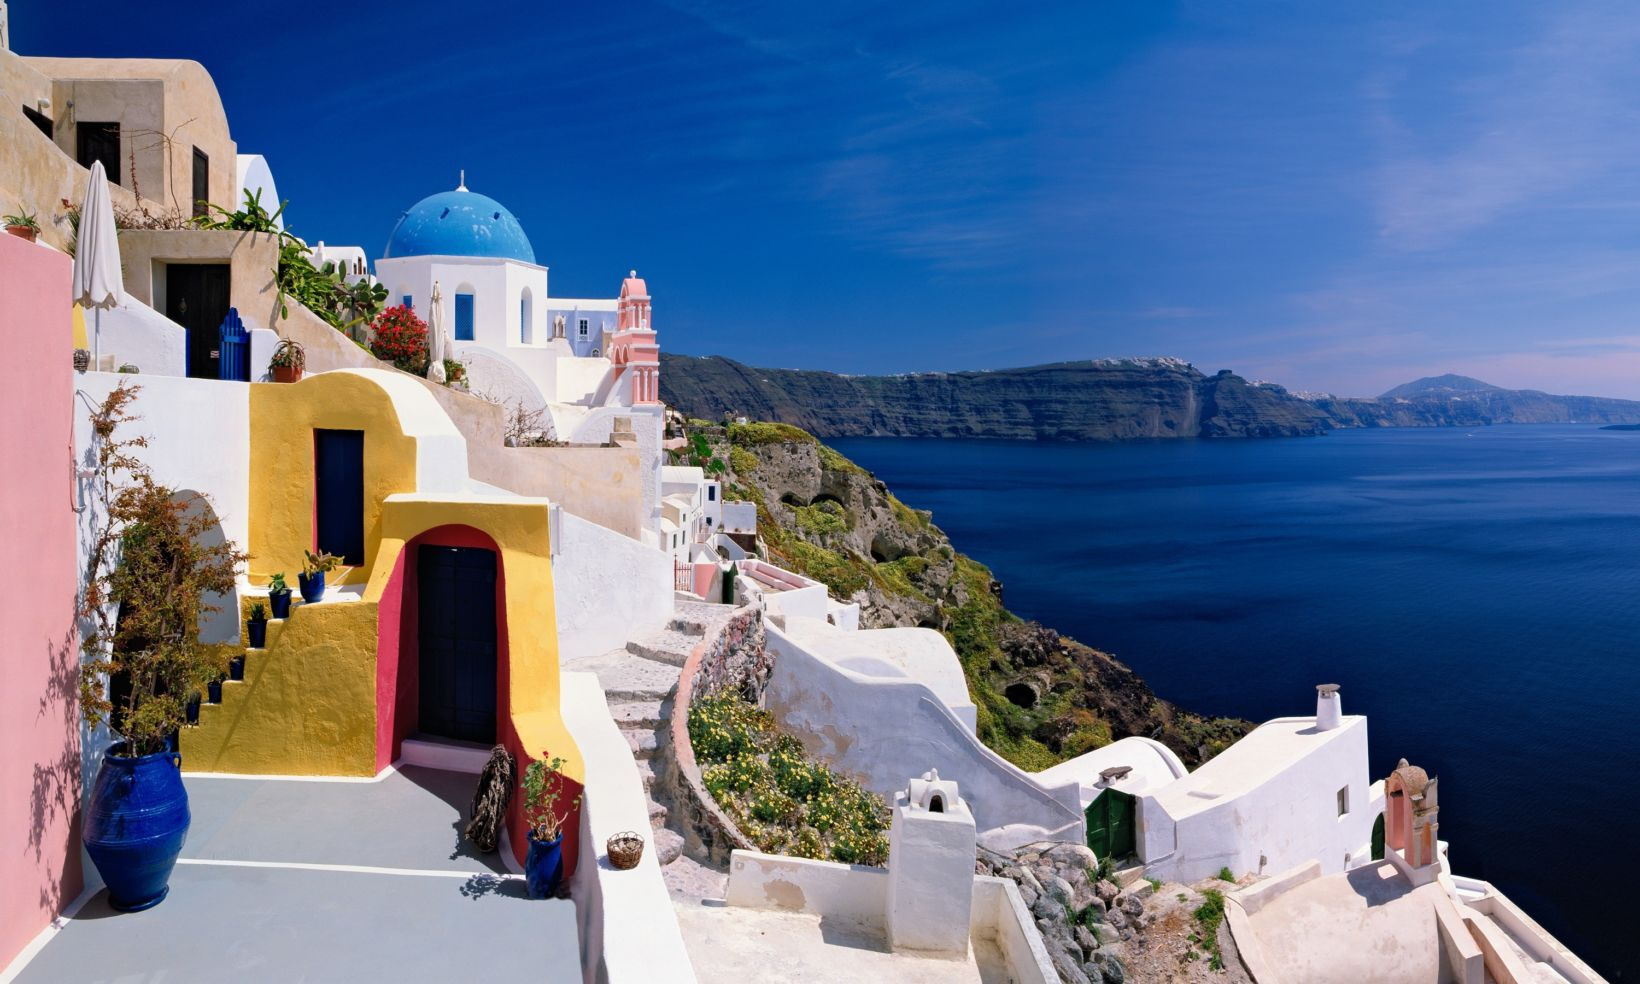 White buildings against the deep blue Mediterranean in Santorini, Greece